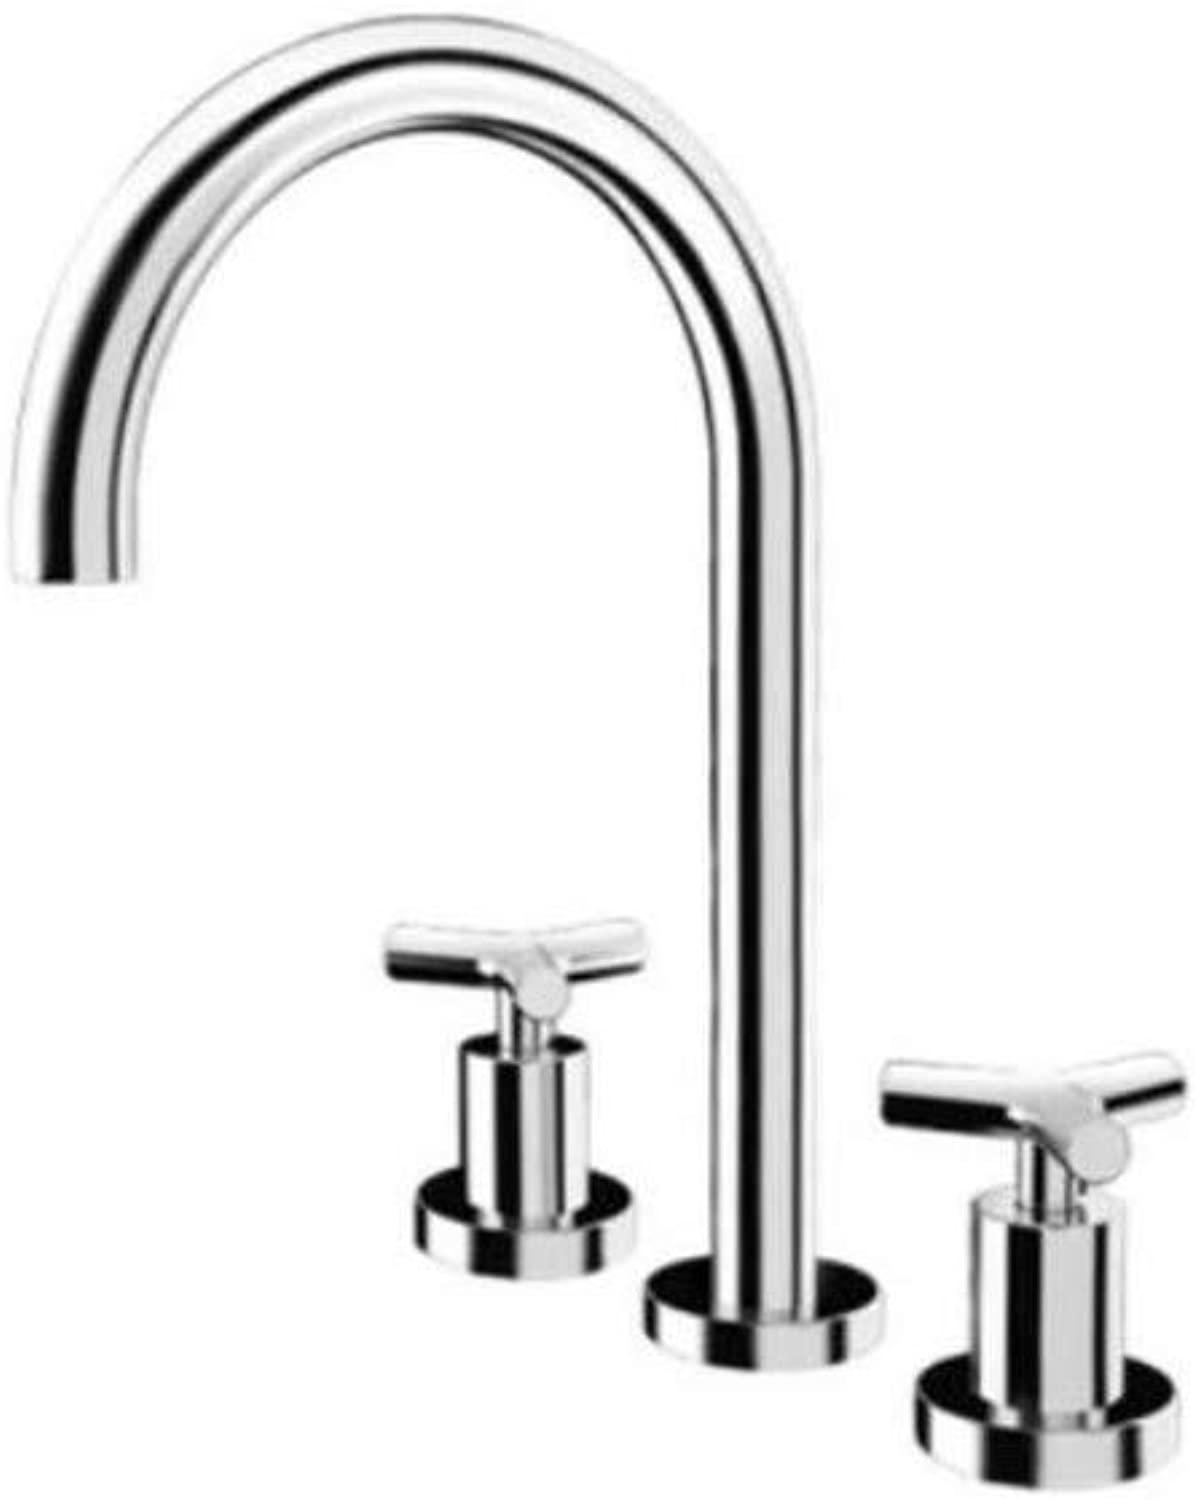 Taps Kitchen Sinktaps Mixer Swivel Faucet Sink Double-Handled Cold-Hot Rust-Proof Universal Bathroom with Large Amount